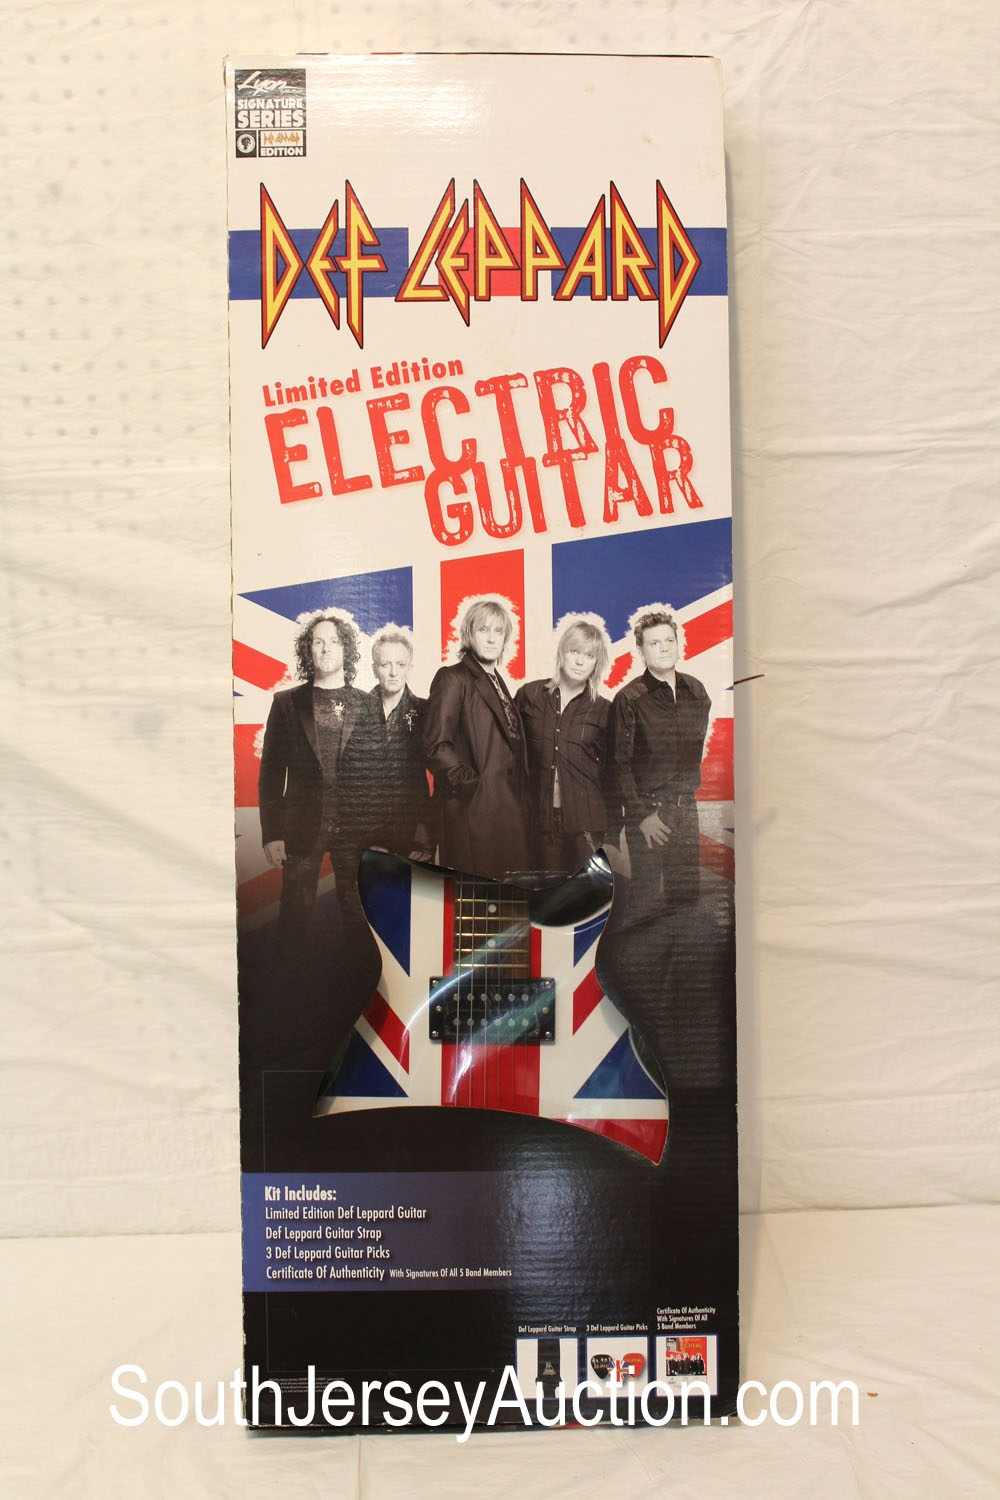 Def Leppard Electric Guitar, Limited Edition, Signature Series Union Jack, in original box unopened (never been out of the box )